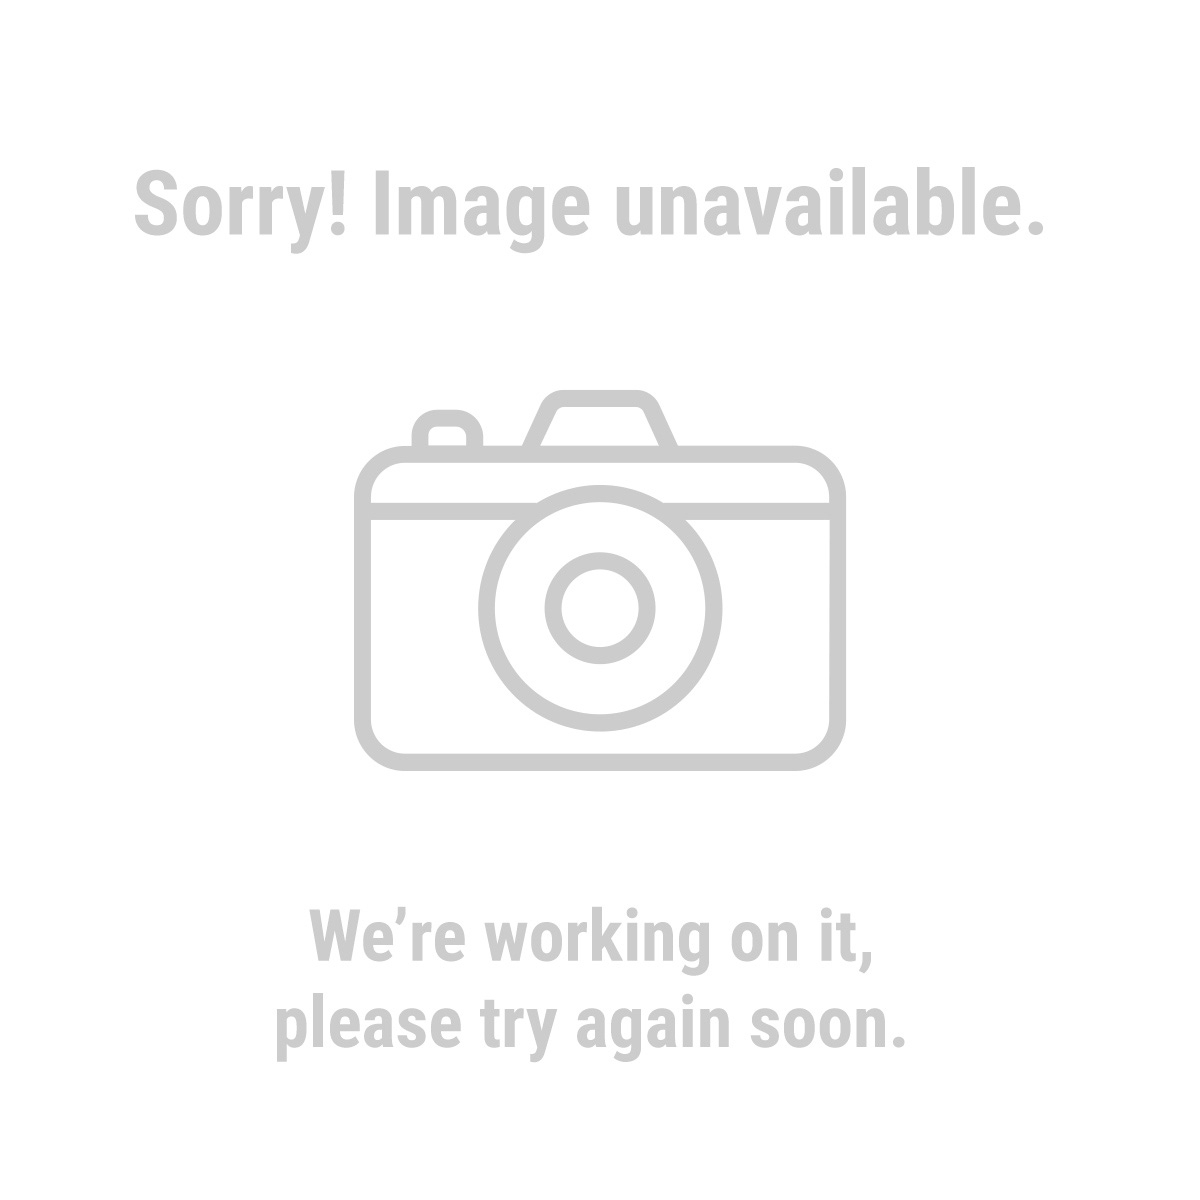 HFT® 60467 19 ft. x 19-1/2 ft. All Purpose Weather Resistant Tarp